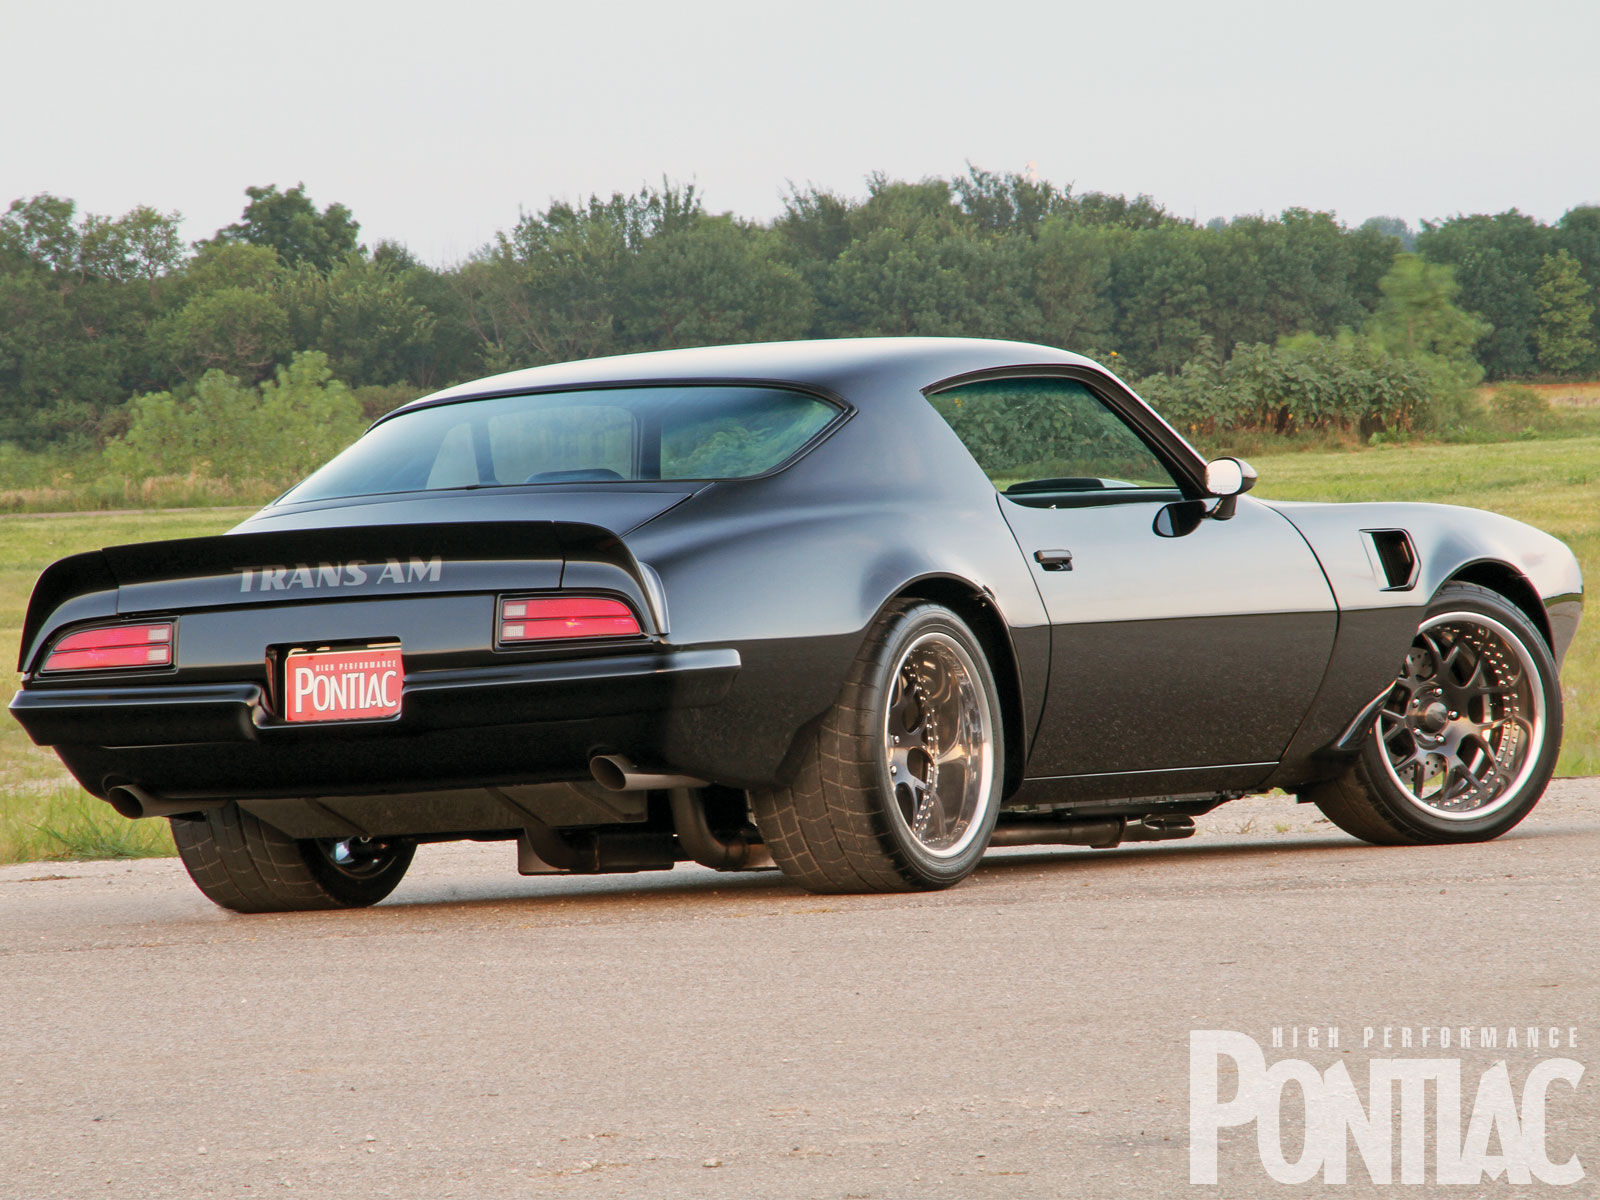 My Perfect Pontiac Trans Am 3dtuning Probably The Best